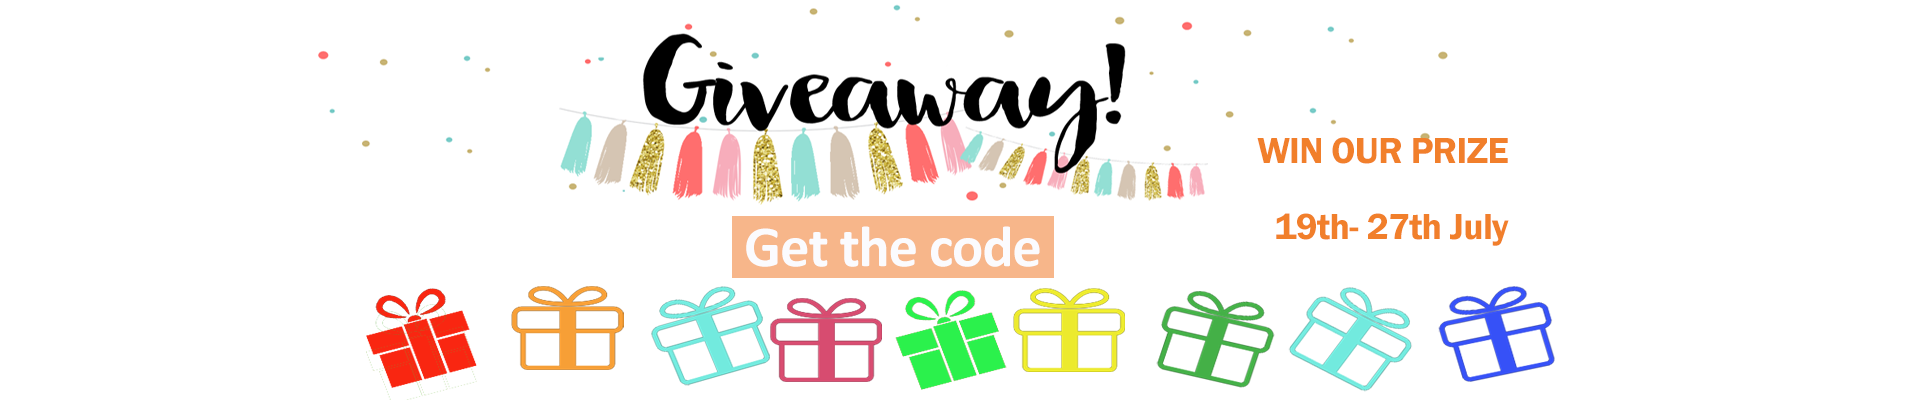 July Giveaway Bonus Entry Code